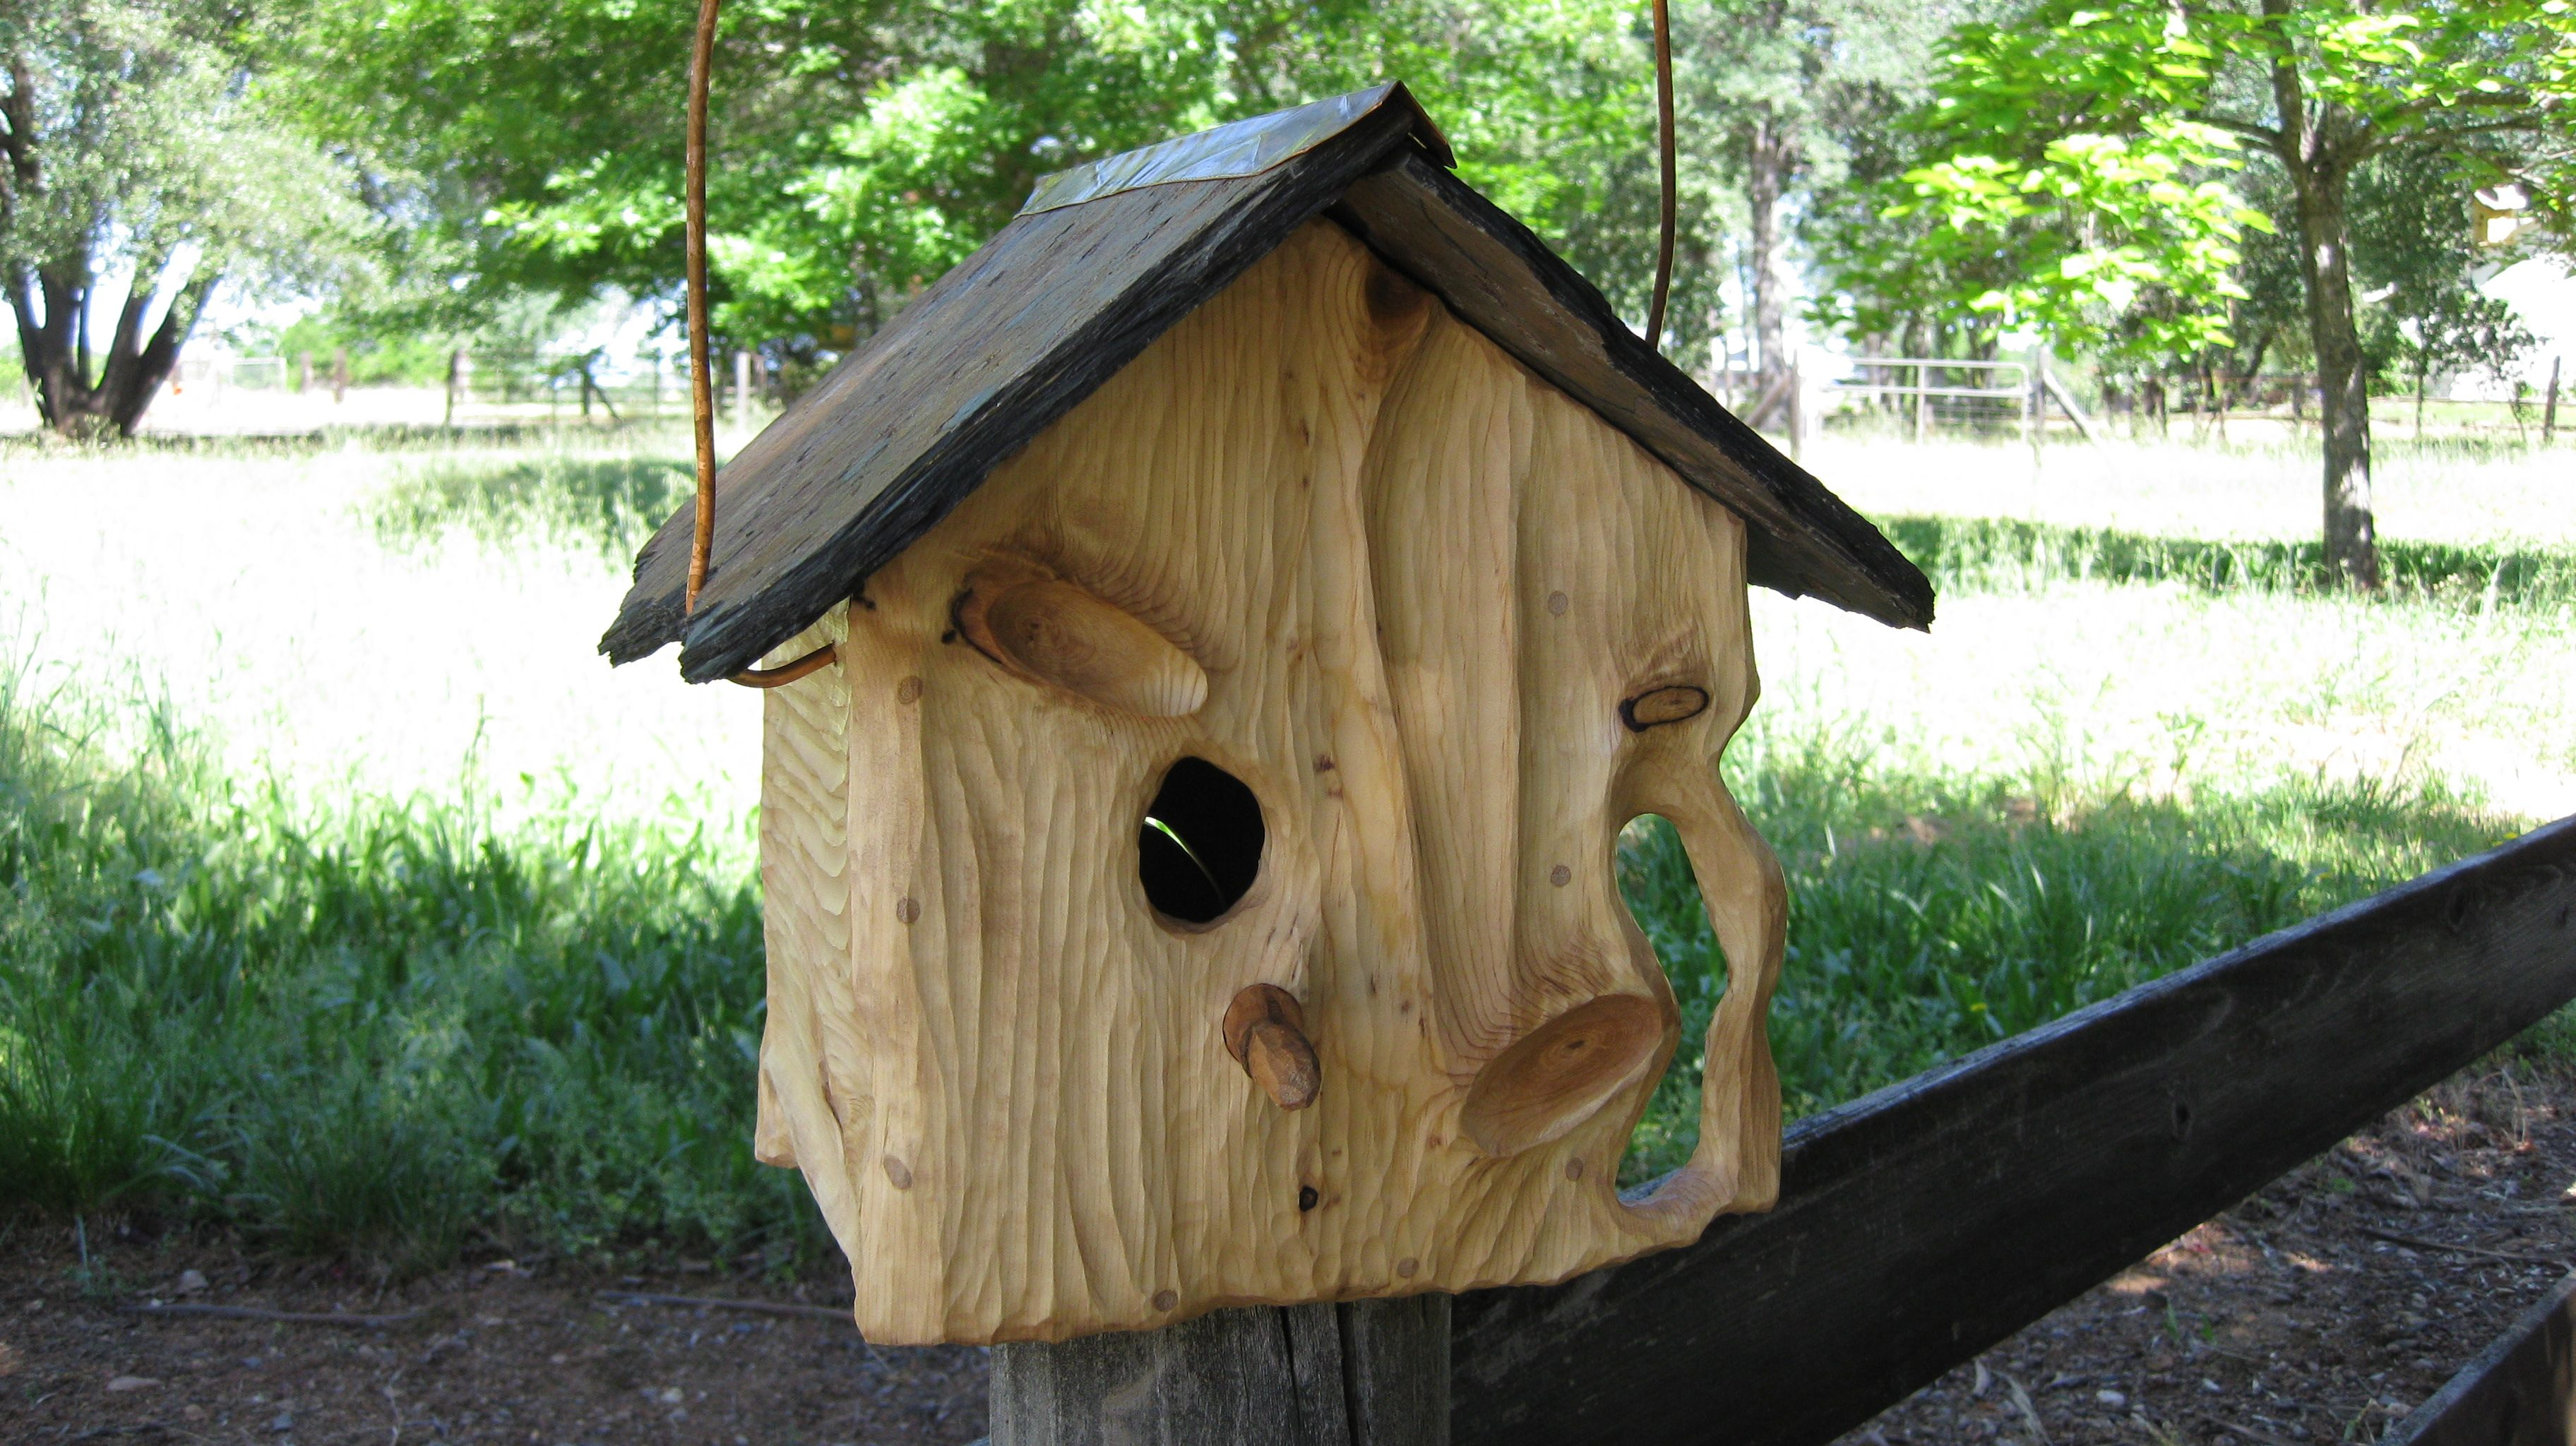 This Is A Beautiful Unique And Rustic One Of A Kind Hand Crafted Birdhouse It Is Sculpted Pine With A Slate Roof And Bird Houses Bird House Kits Bird House